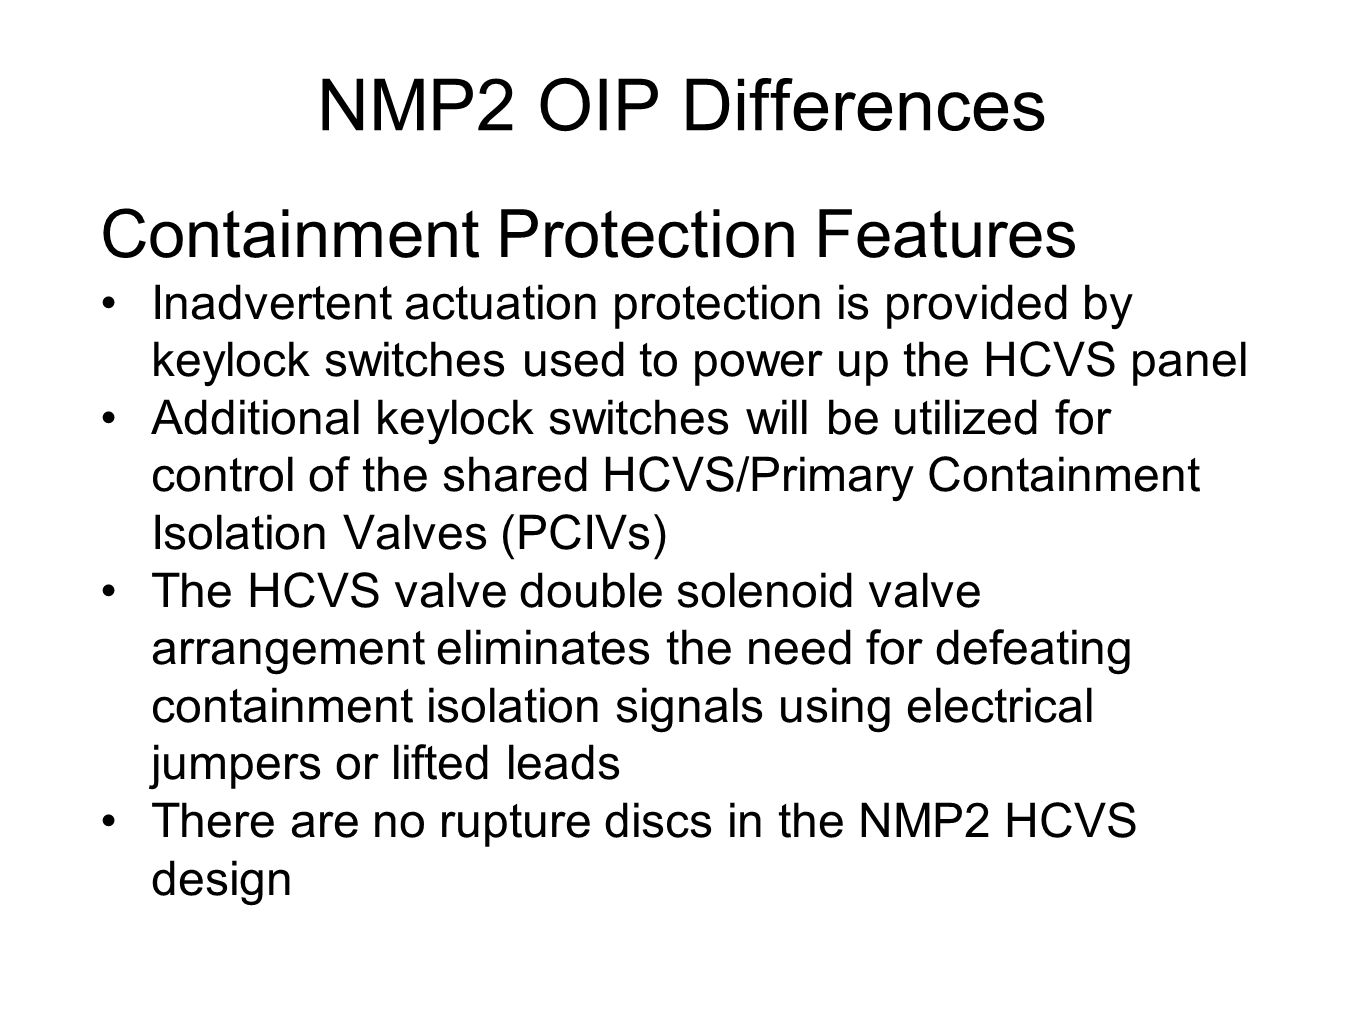 NMP2 OIP Differences Containment Protection Features